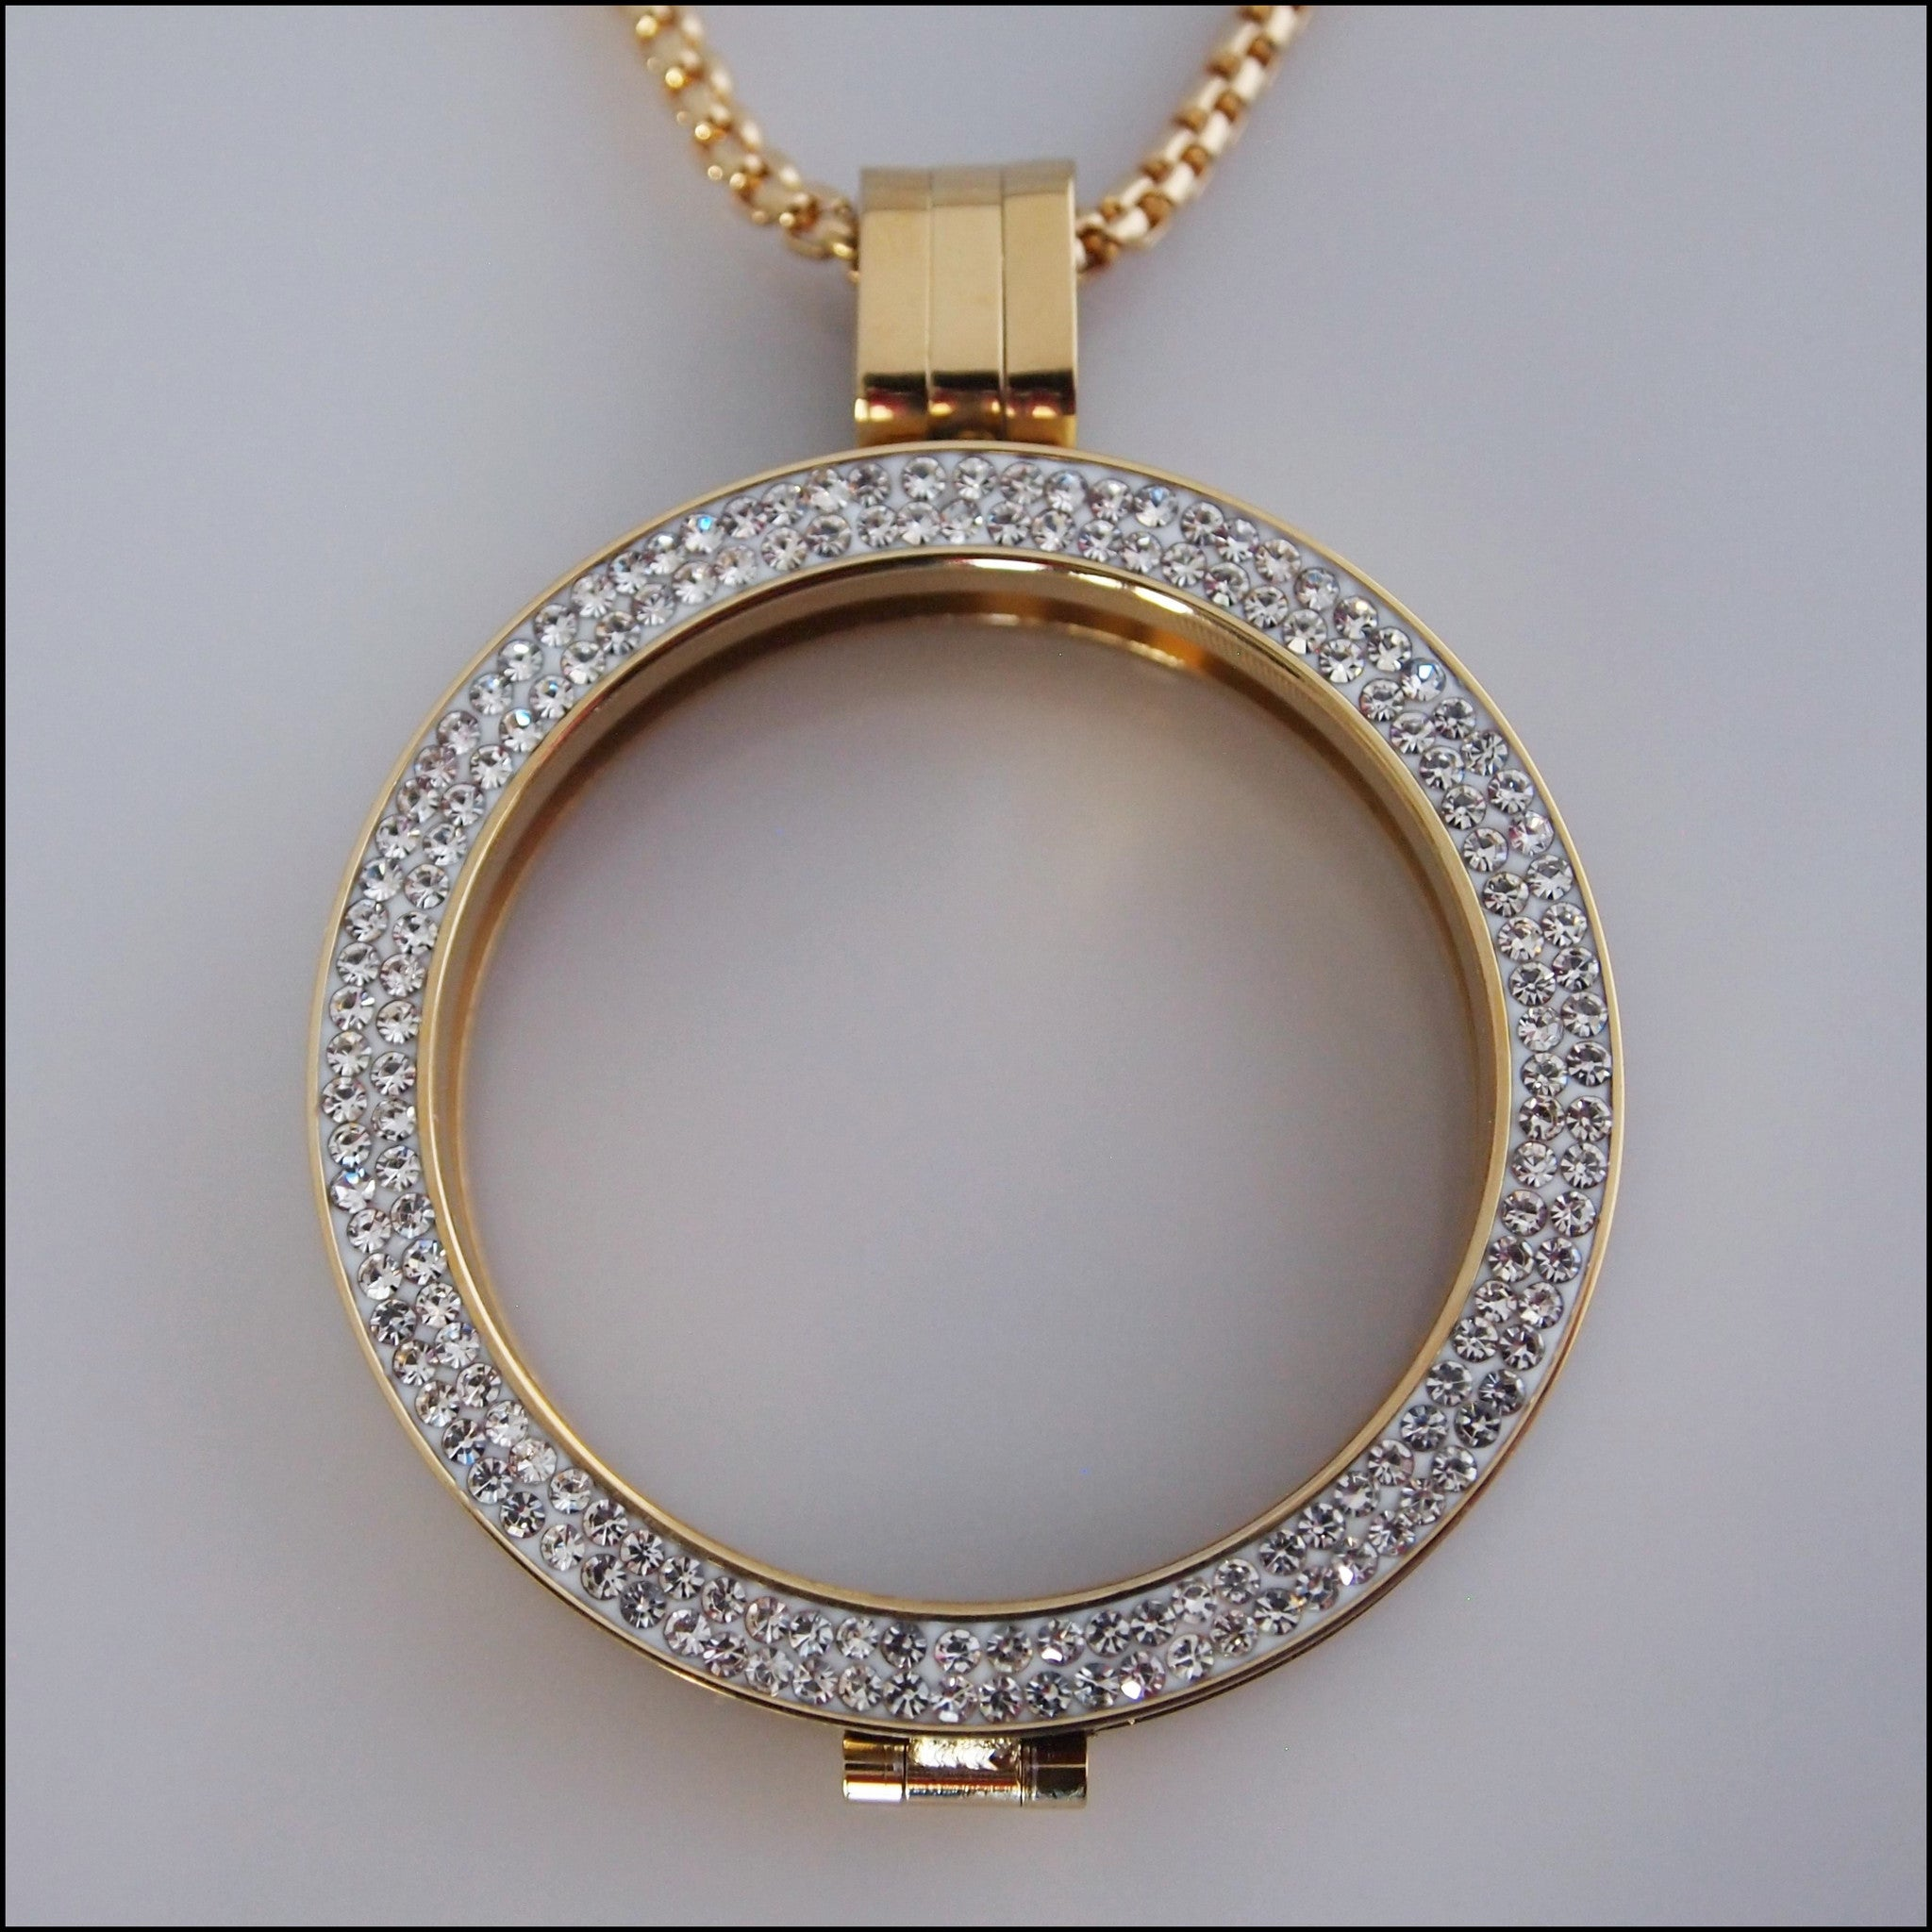 Double Crystal Coin Holder Pendant - Gold - Find Something Special